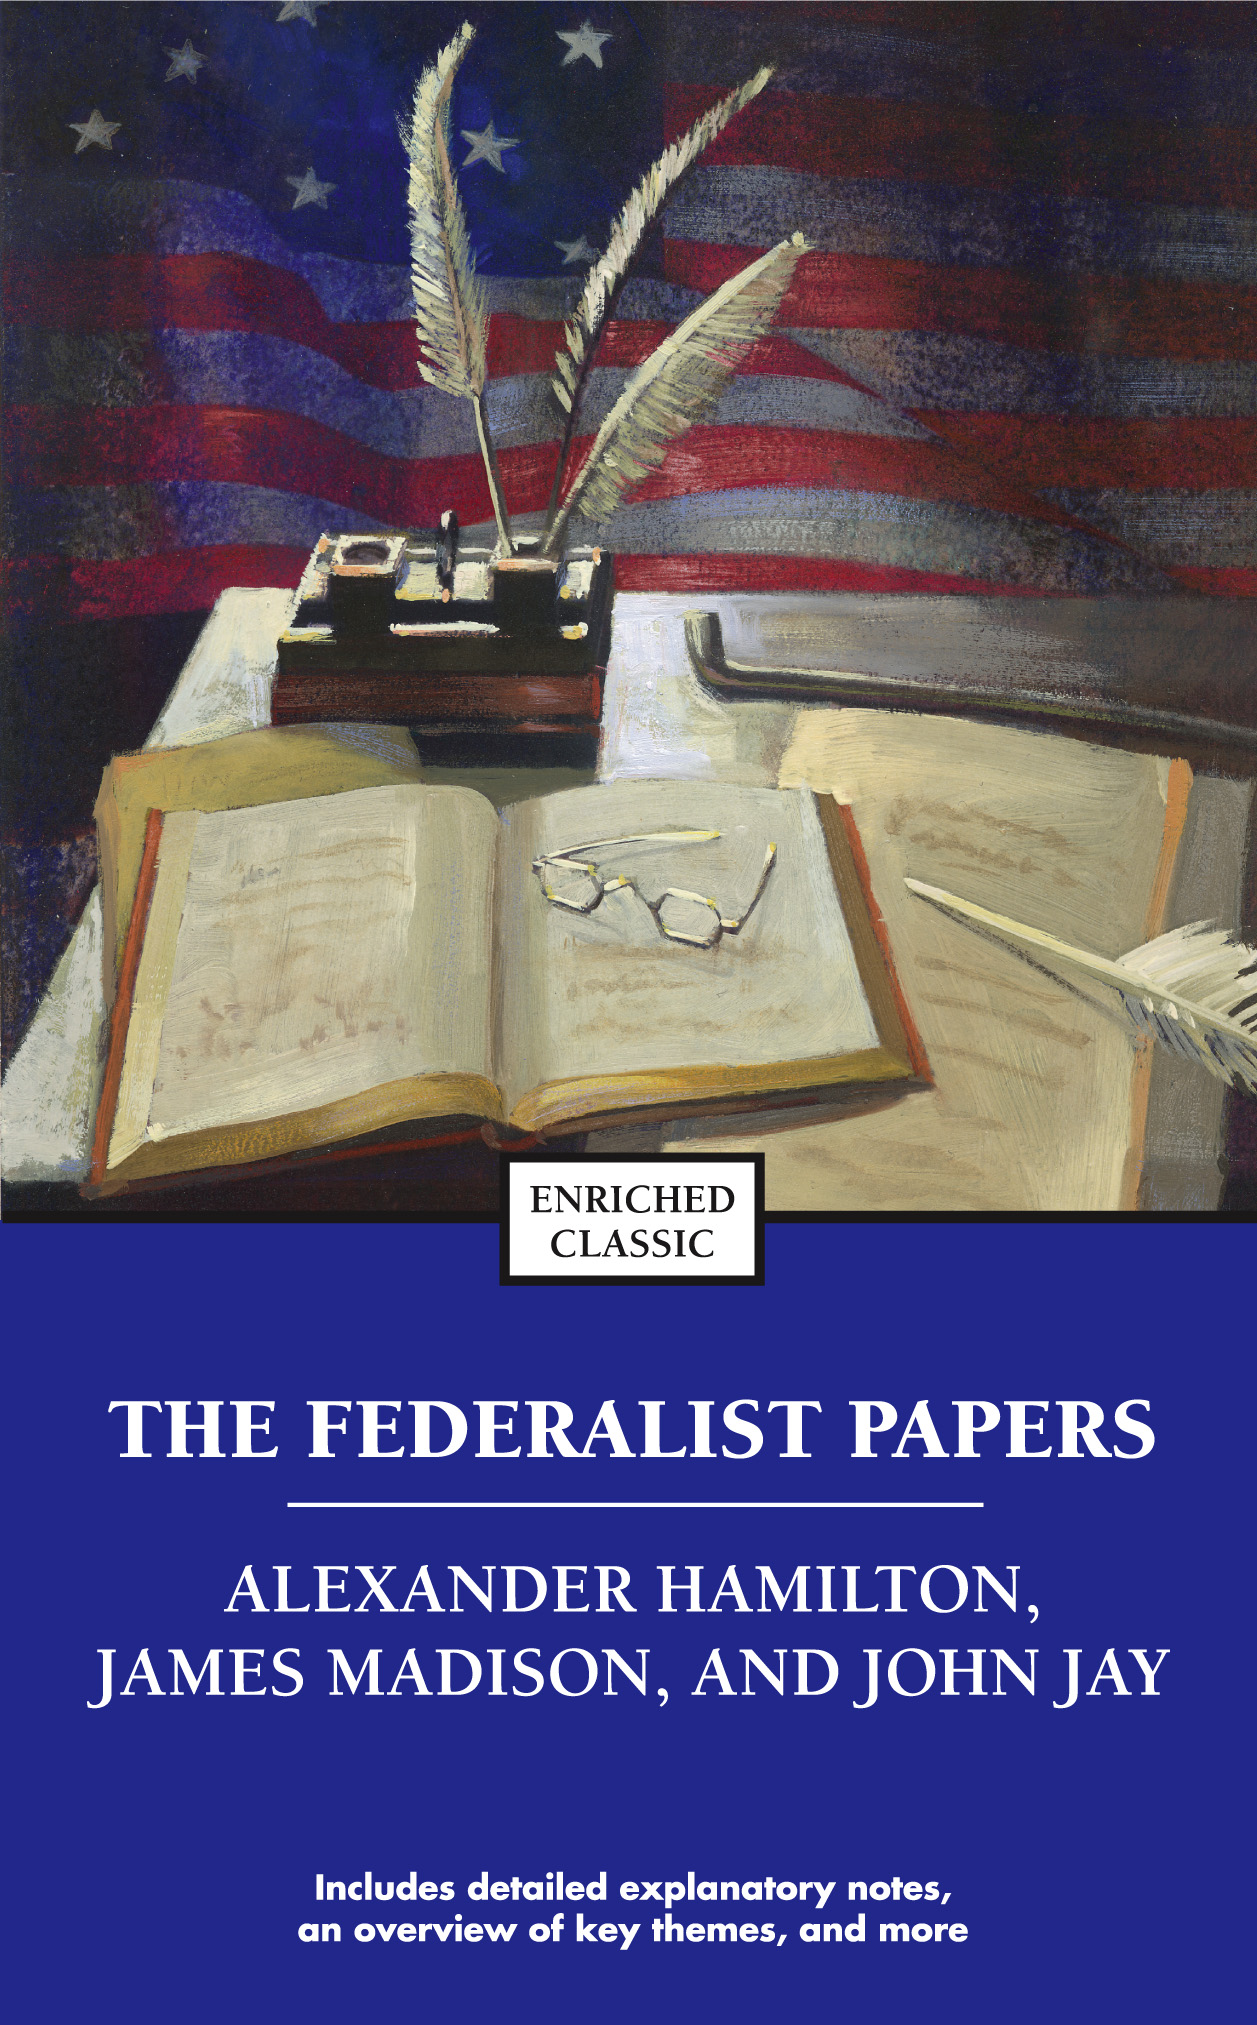 the federalist papers book by alexander hamilton james madison book cover image jpg the federalist papers